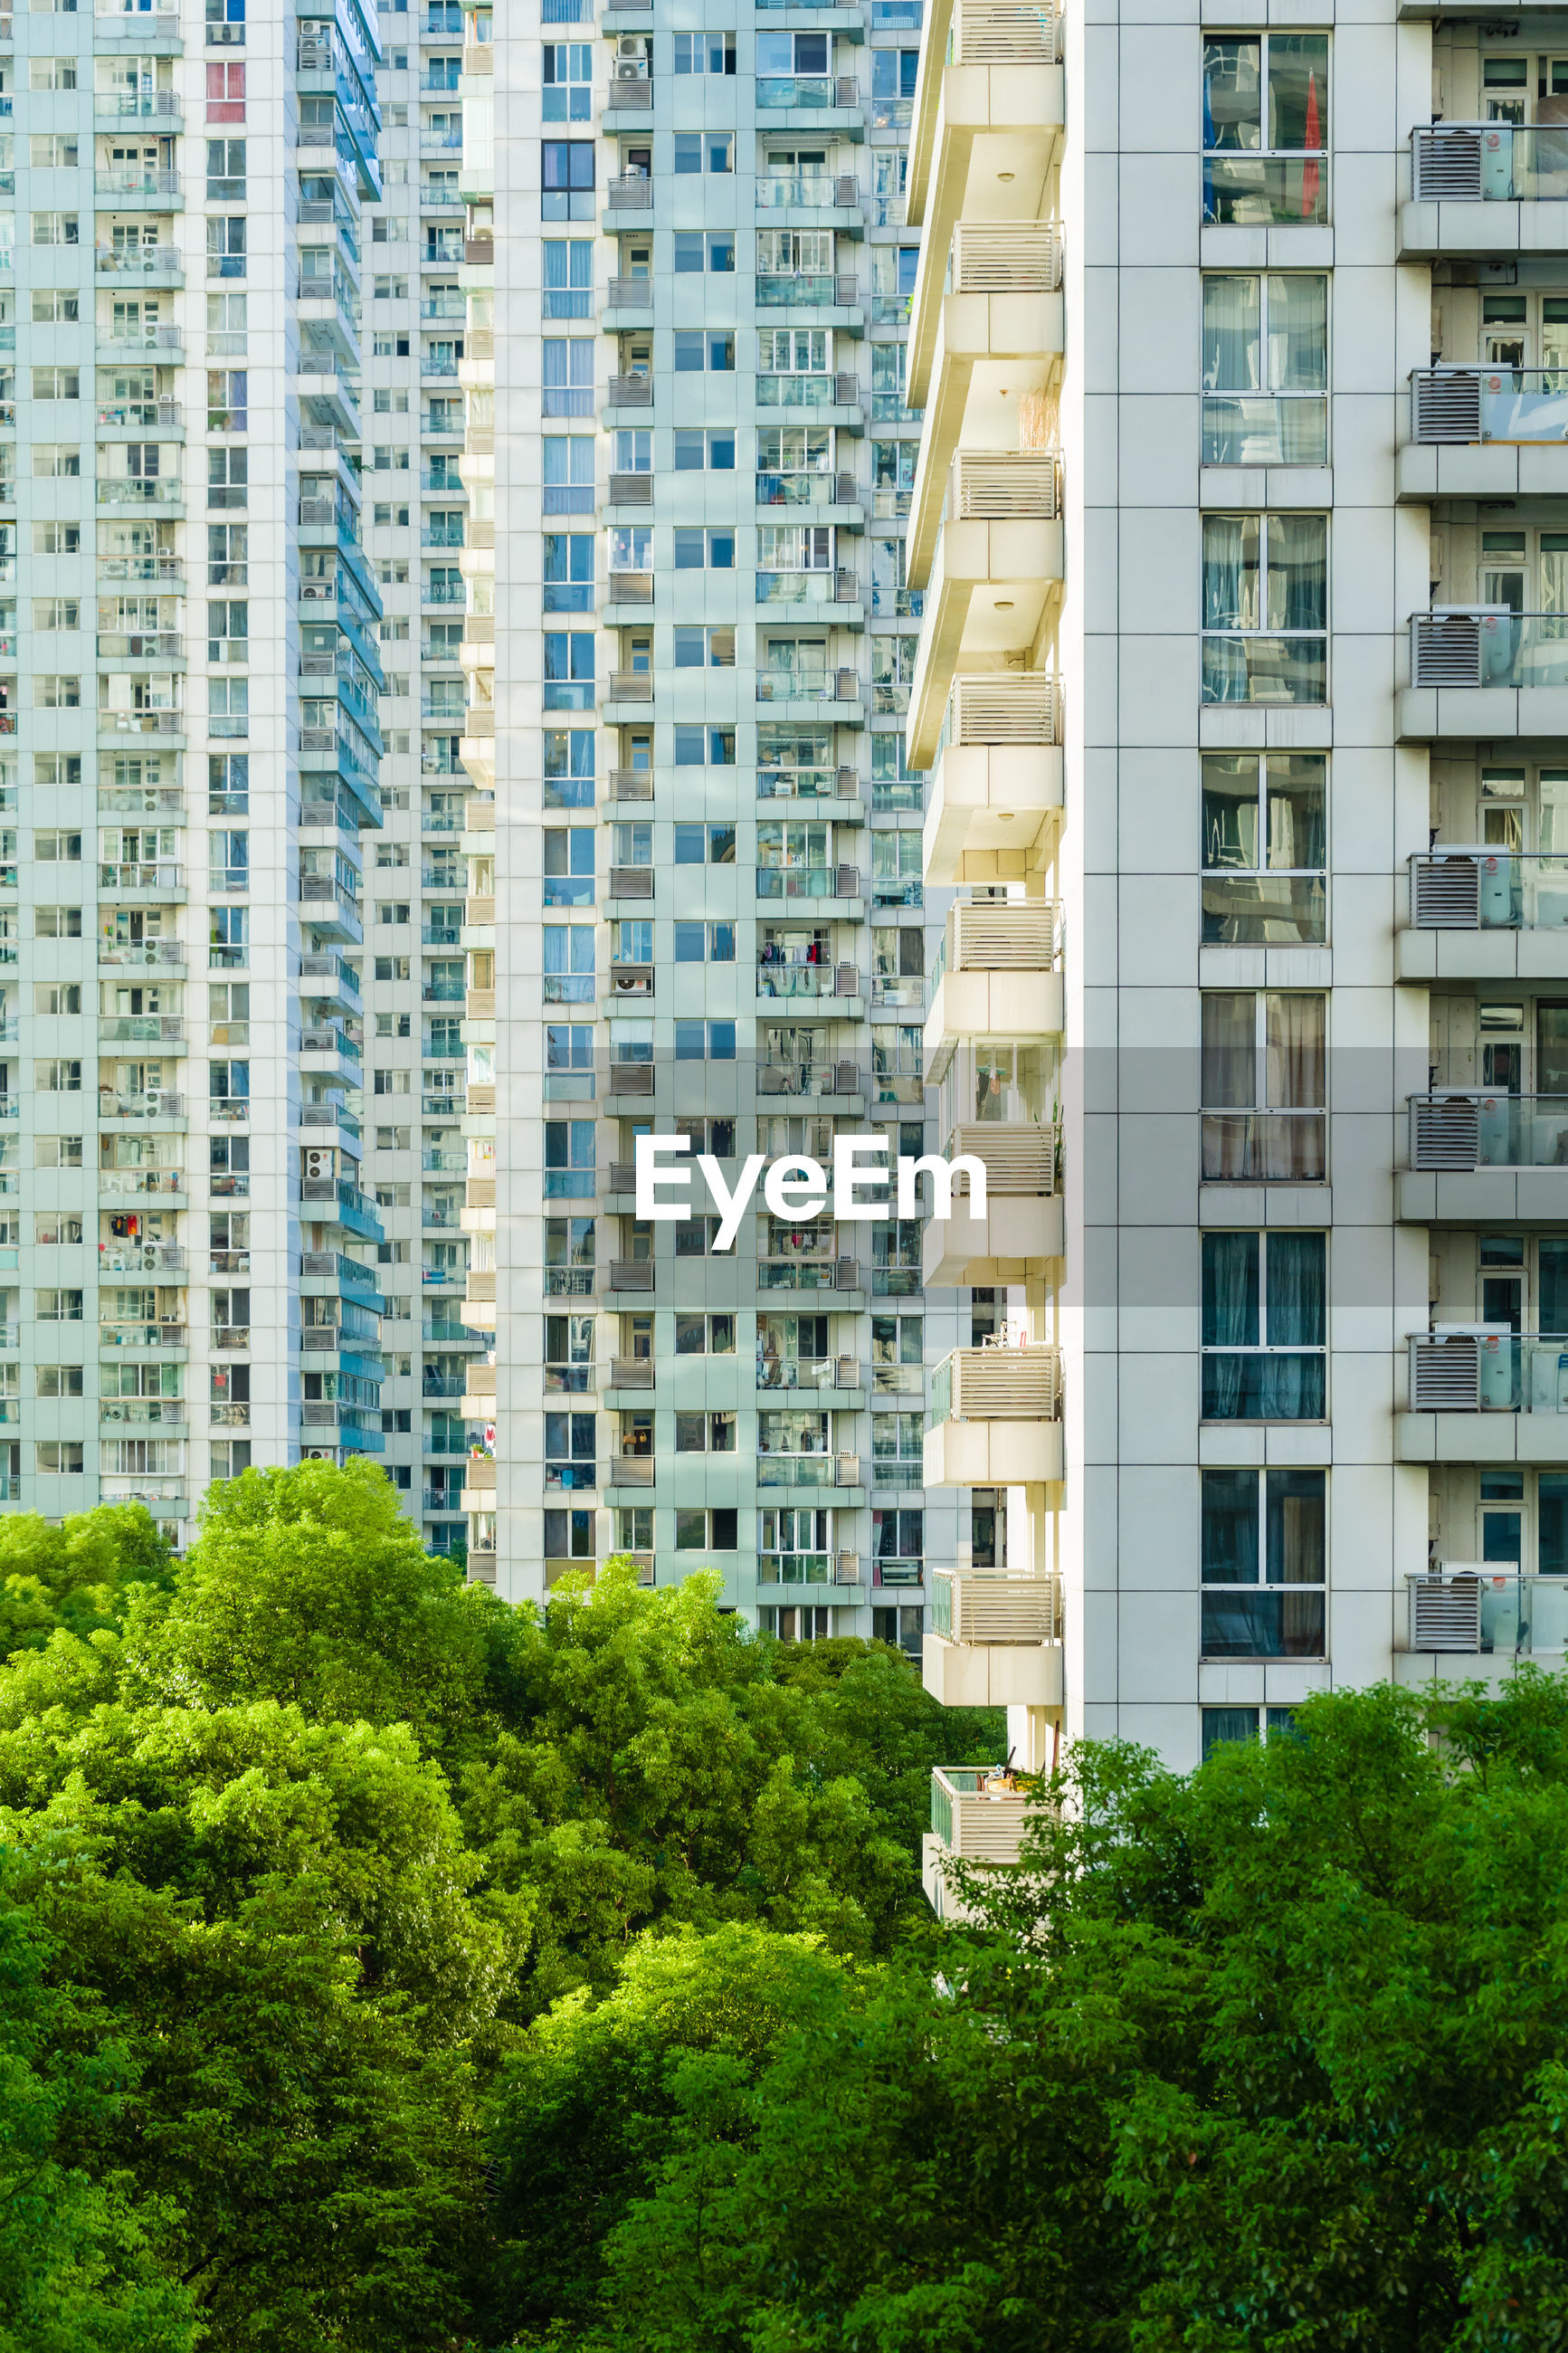 The sceenic view of apartment in urban city